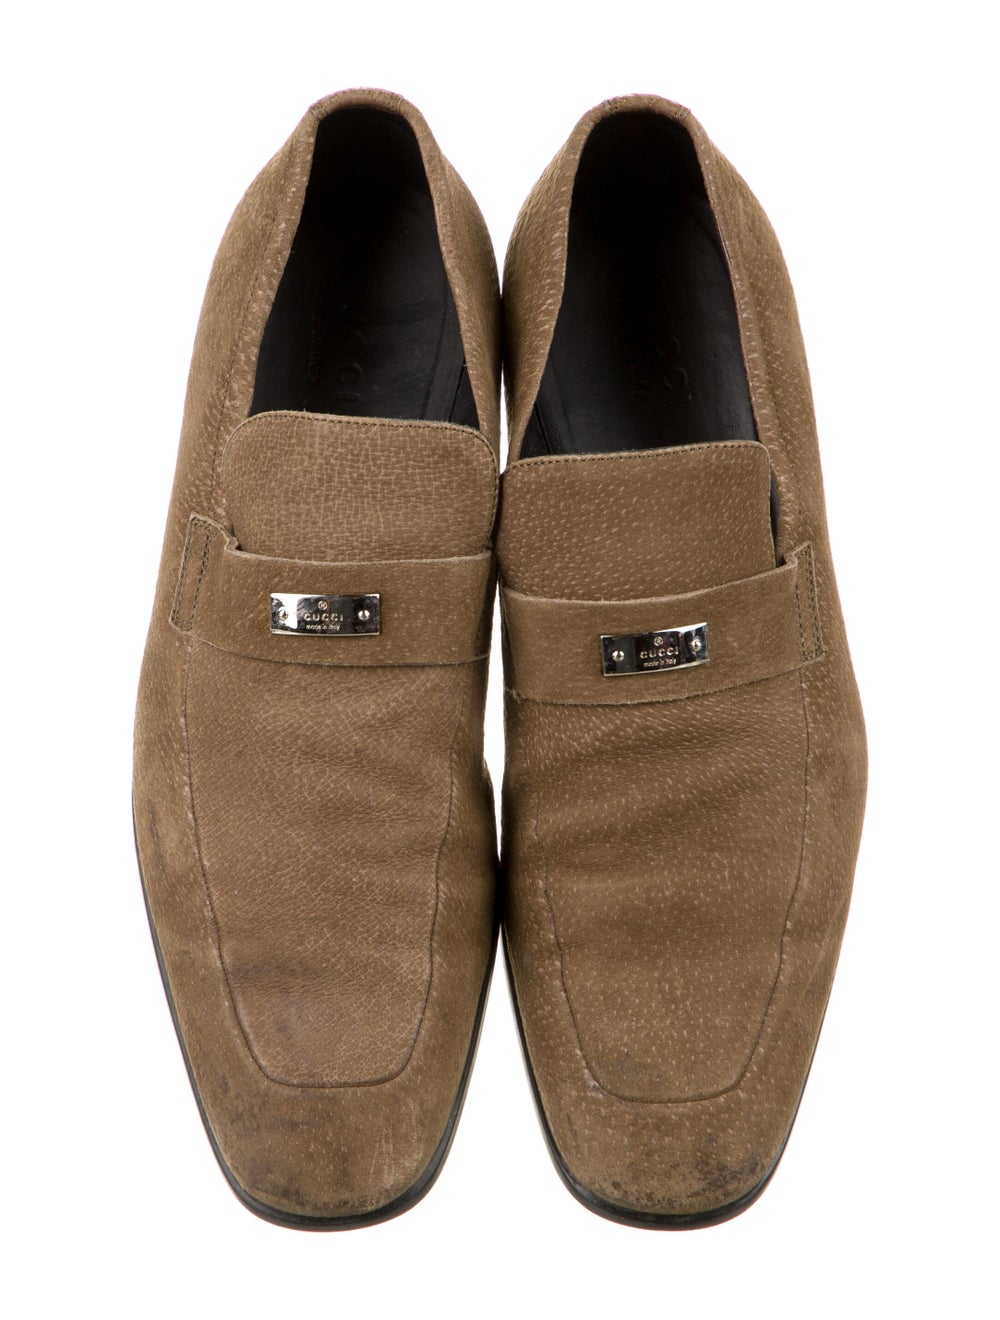 Gucci Suede Dress Loafers Green - image 3